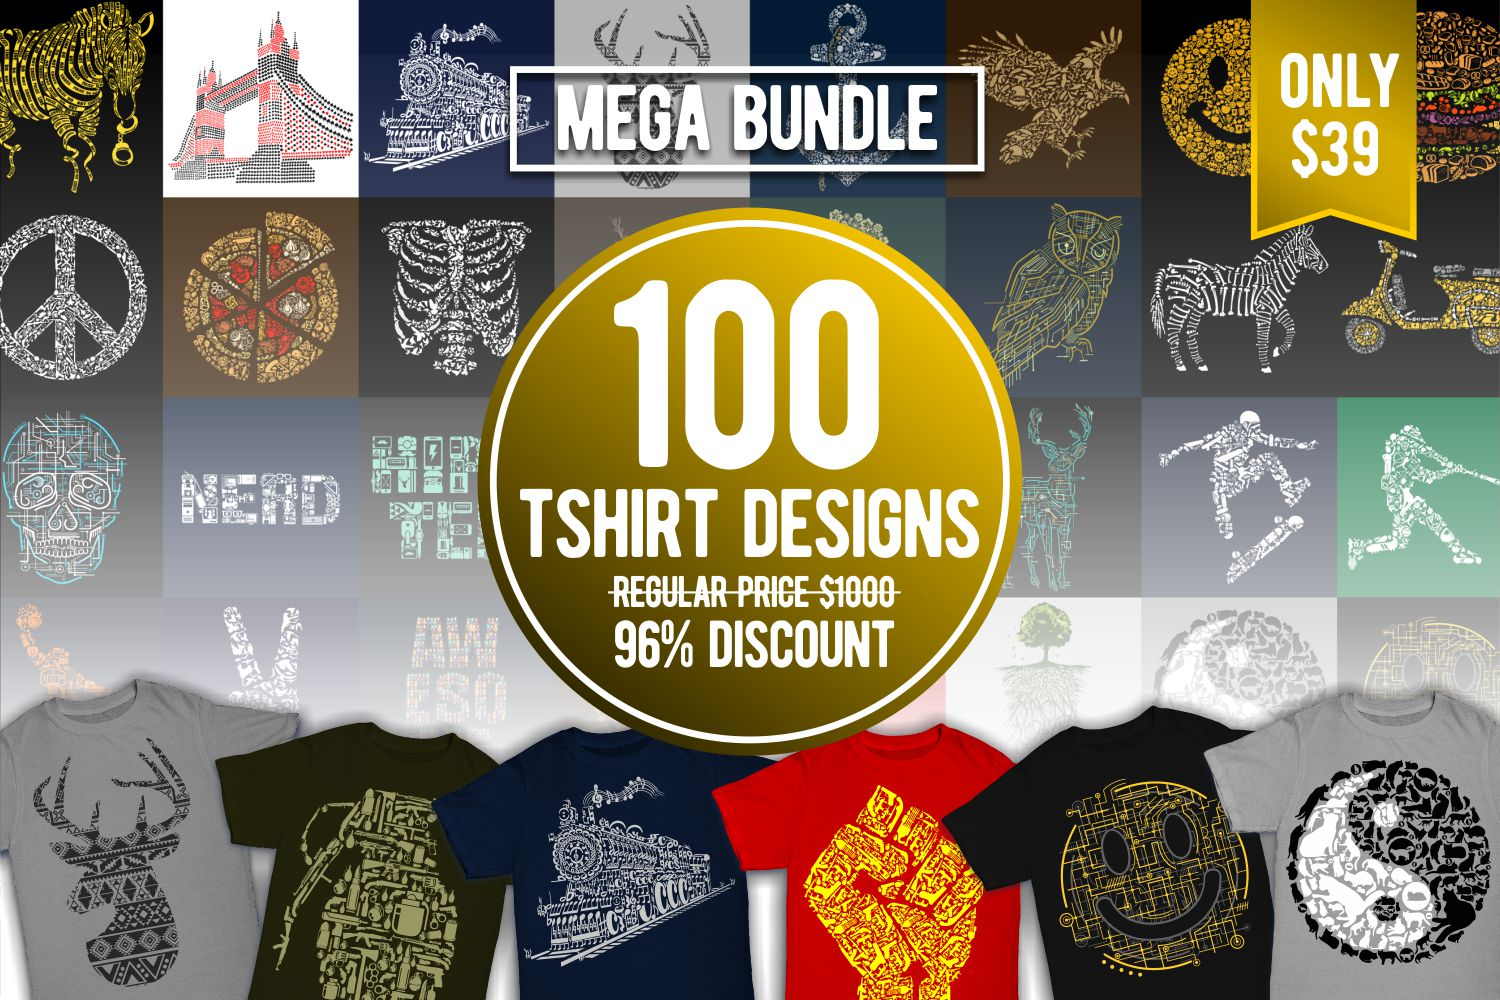 Tshirt Designs Mega Bundle Pack 1 + Pack 2 example image 1